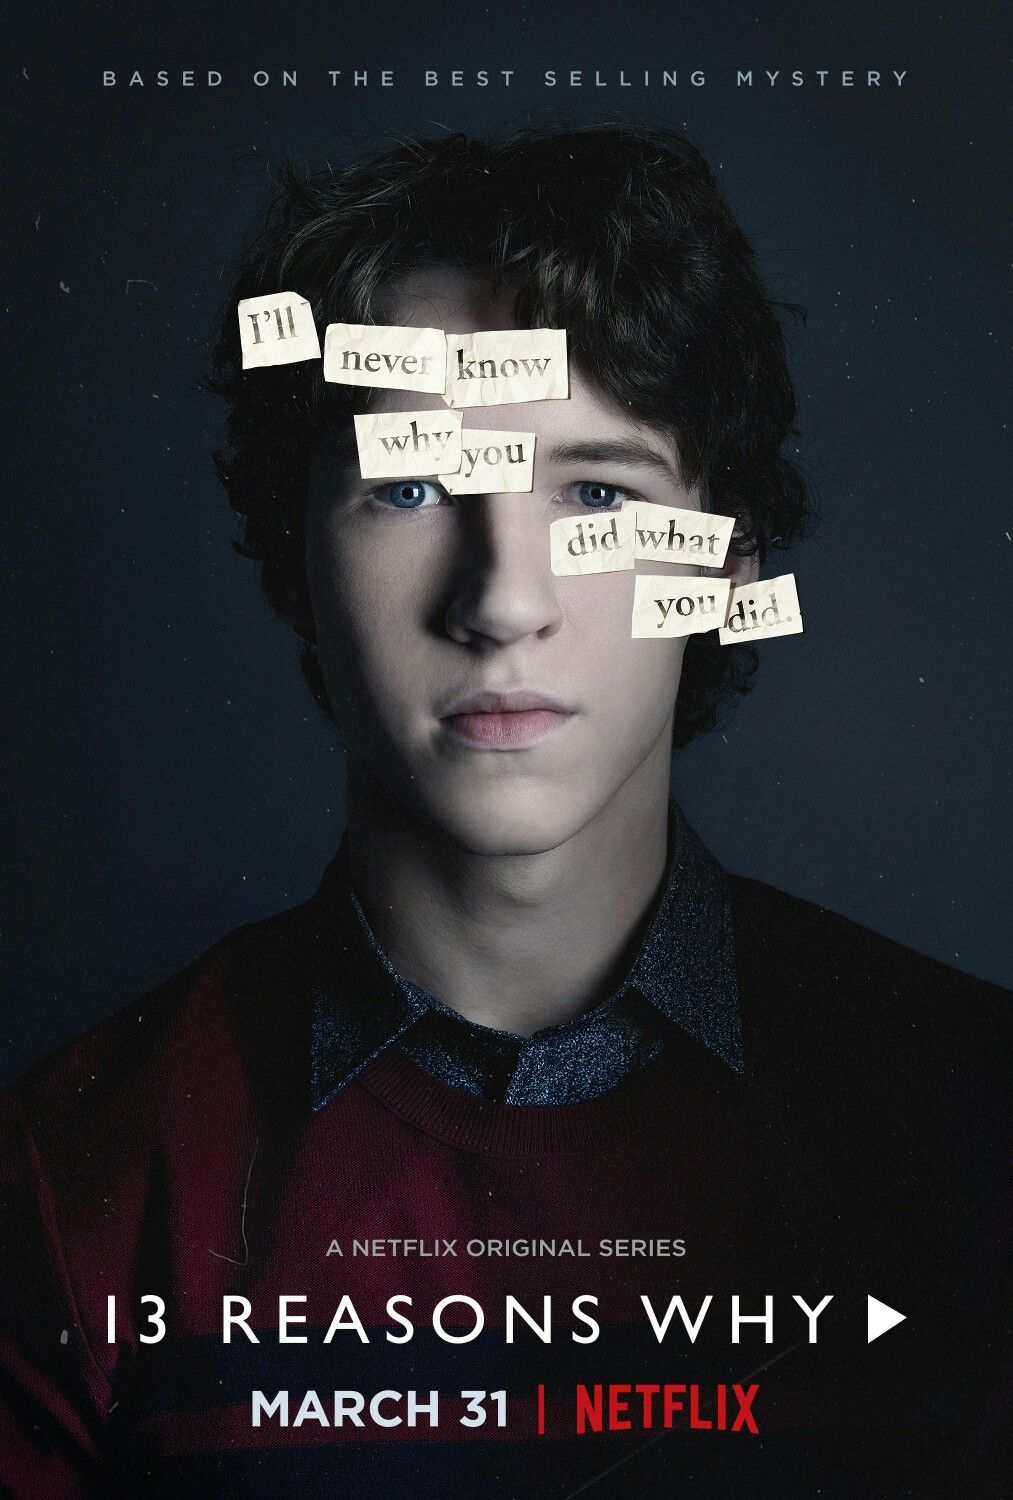 13 reasons why tyler down 13 reasons why in 2018 pinterest 13